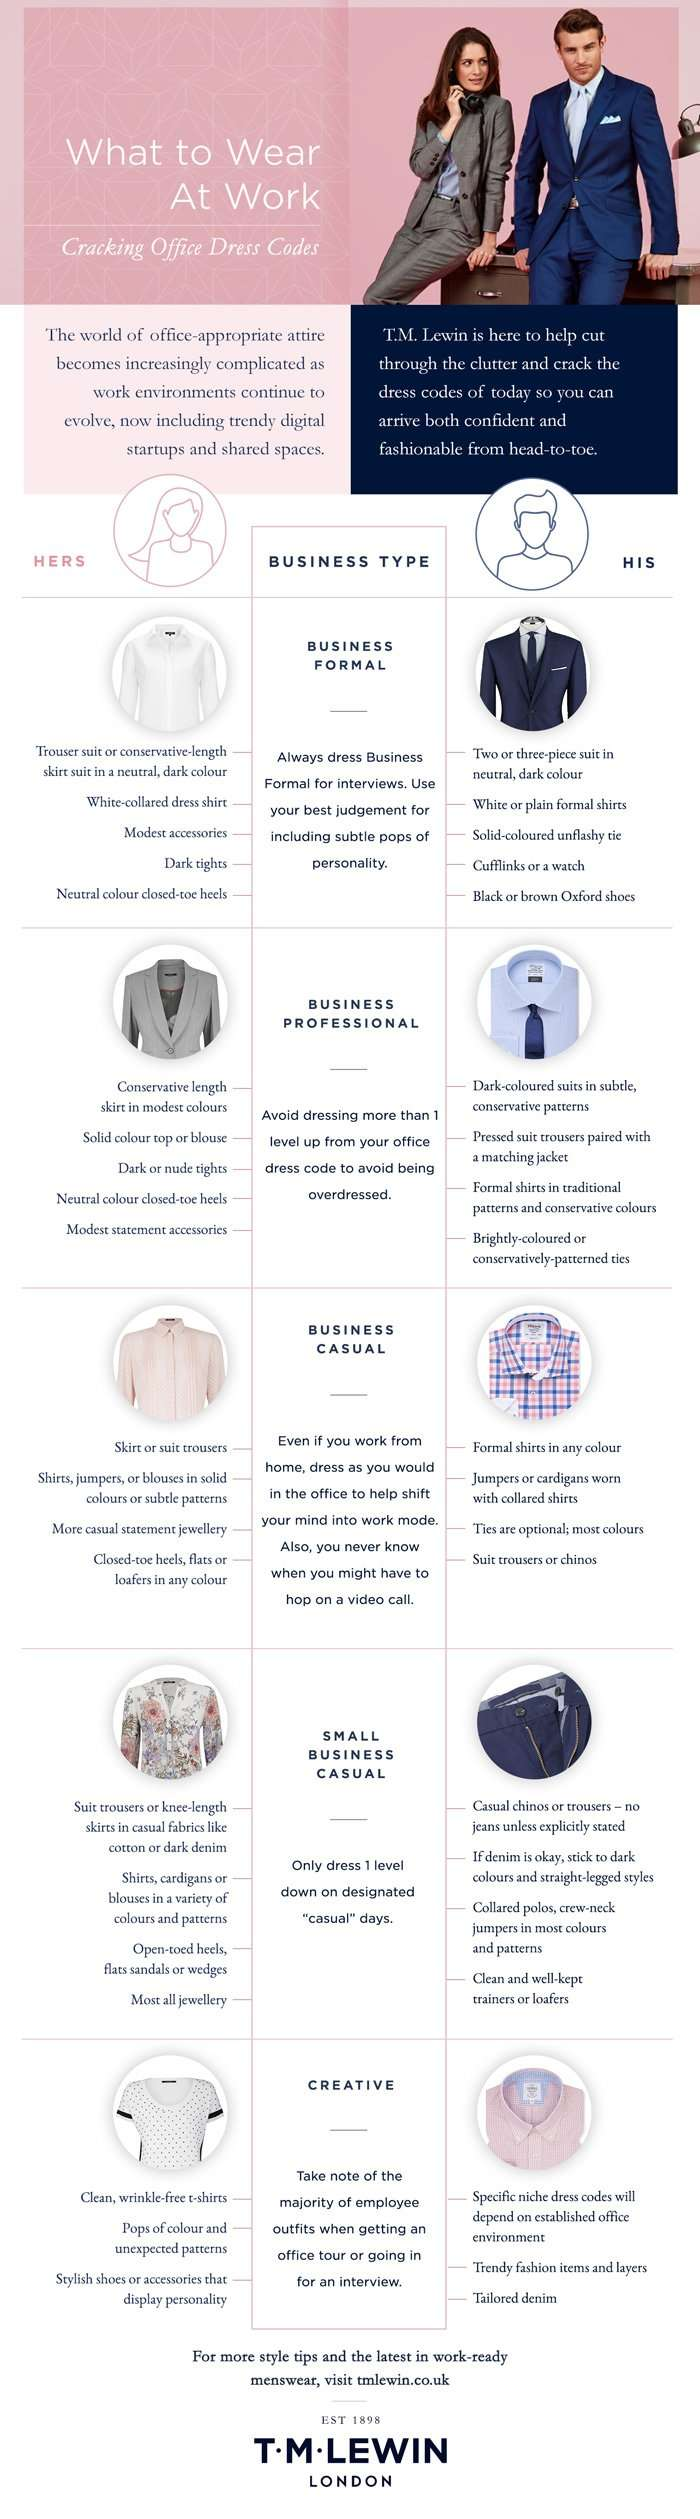 What to Wear at Work:  Cracking Office Dress Codes